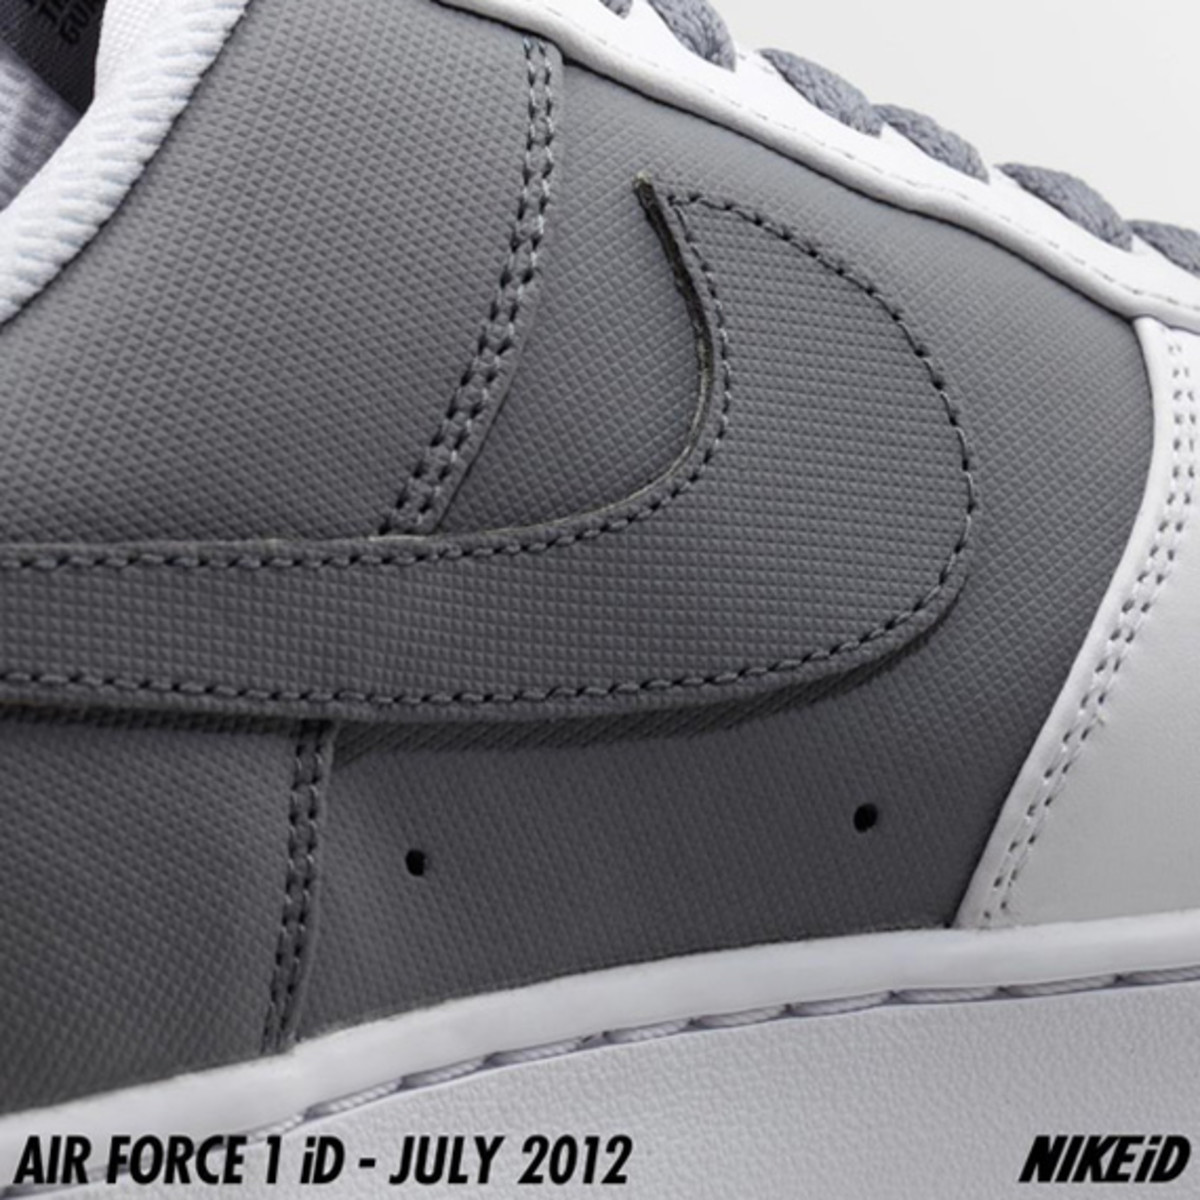 nikeid-air-force-1-id-tactical-mesh-grip-leather-design-july-2012-12